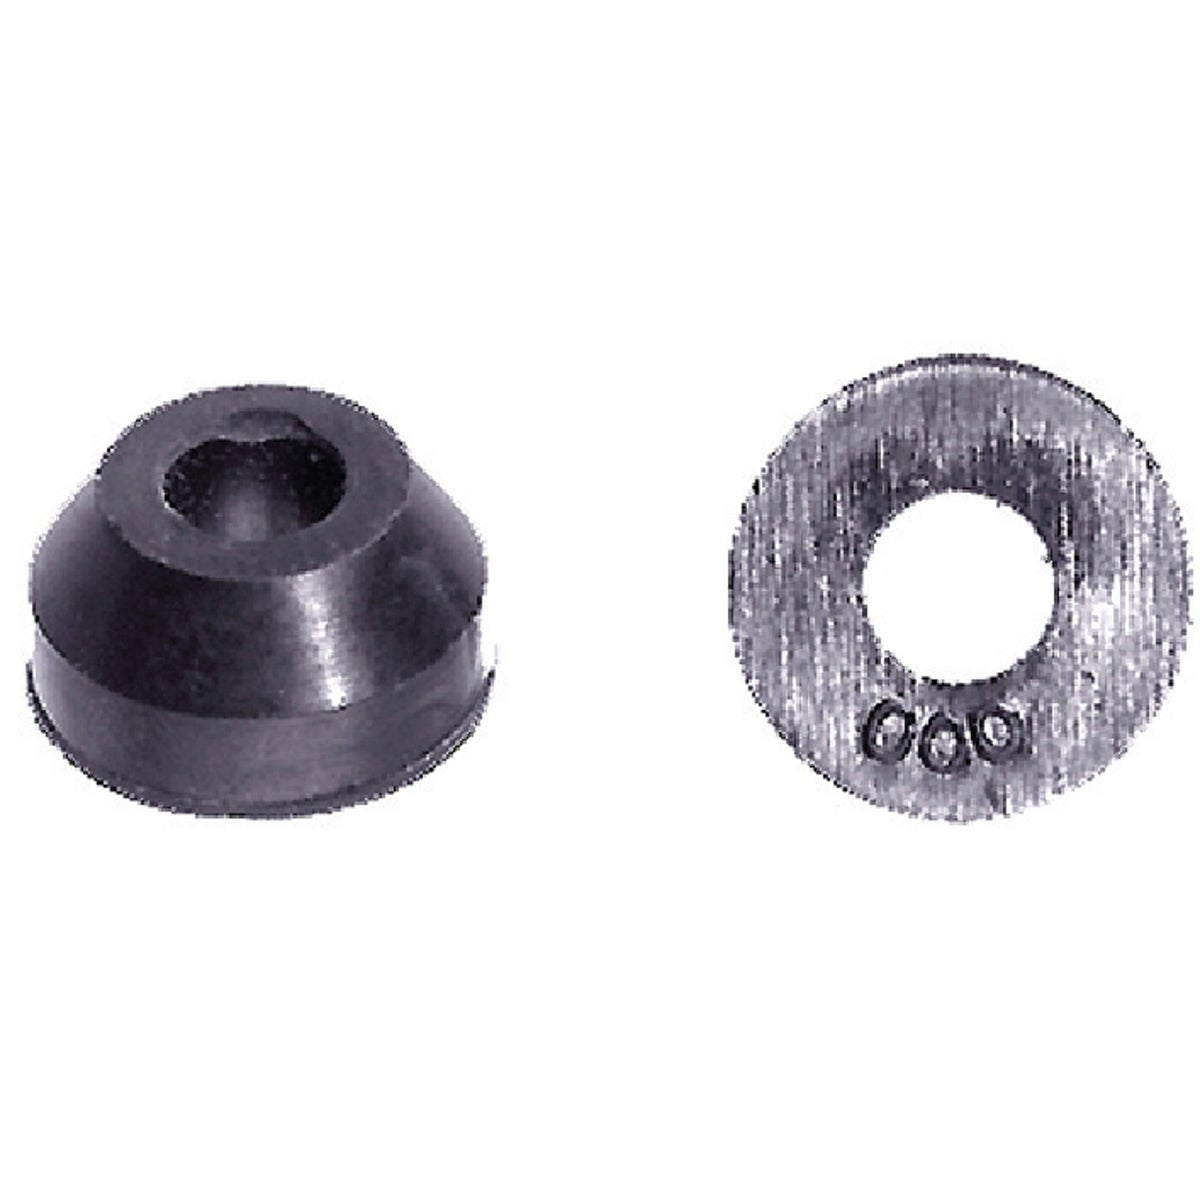 000 BEVEL WASHER